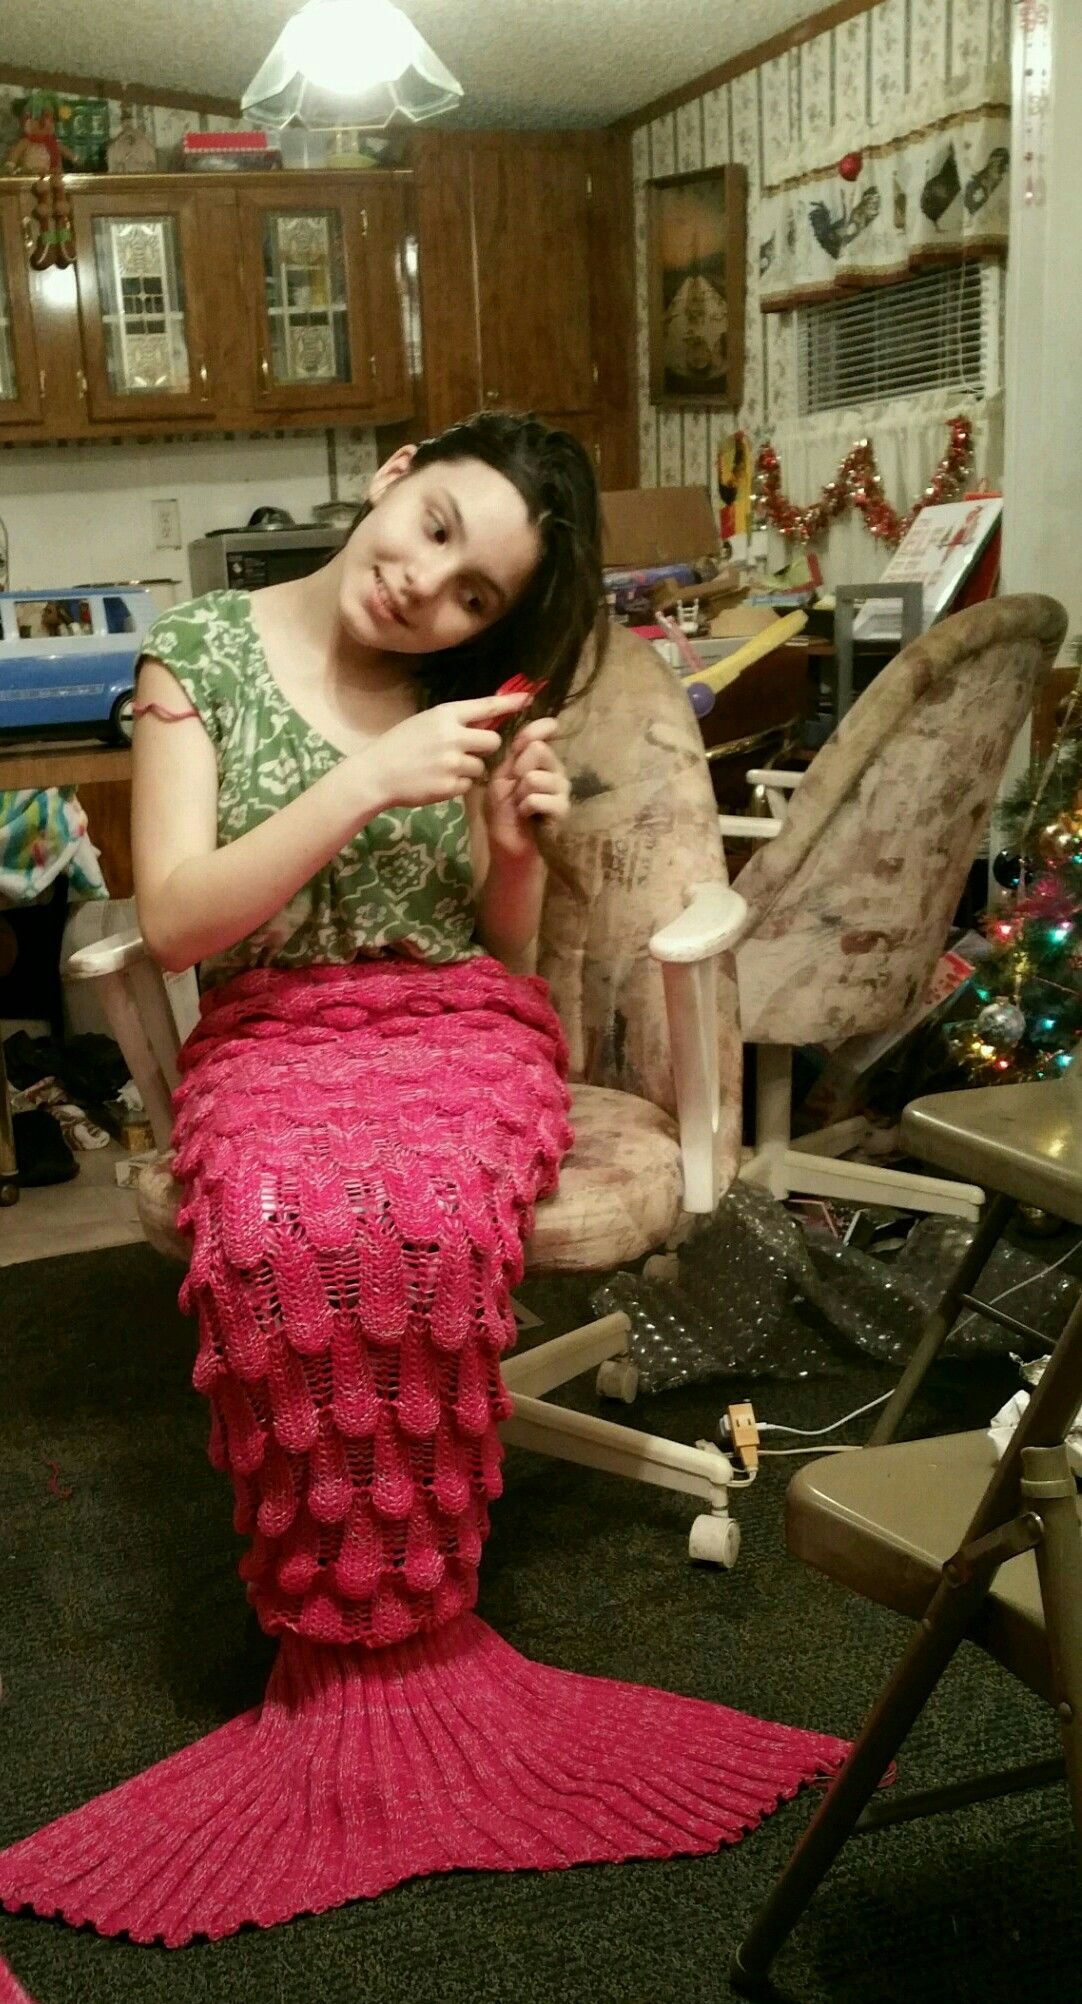 Kayleigh granddaughter shows off her mermaid tail